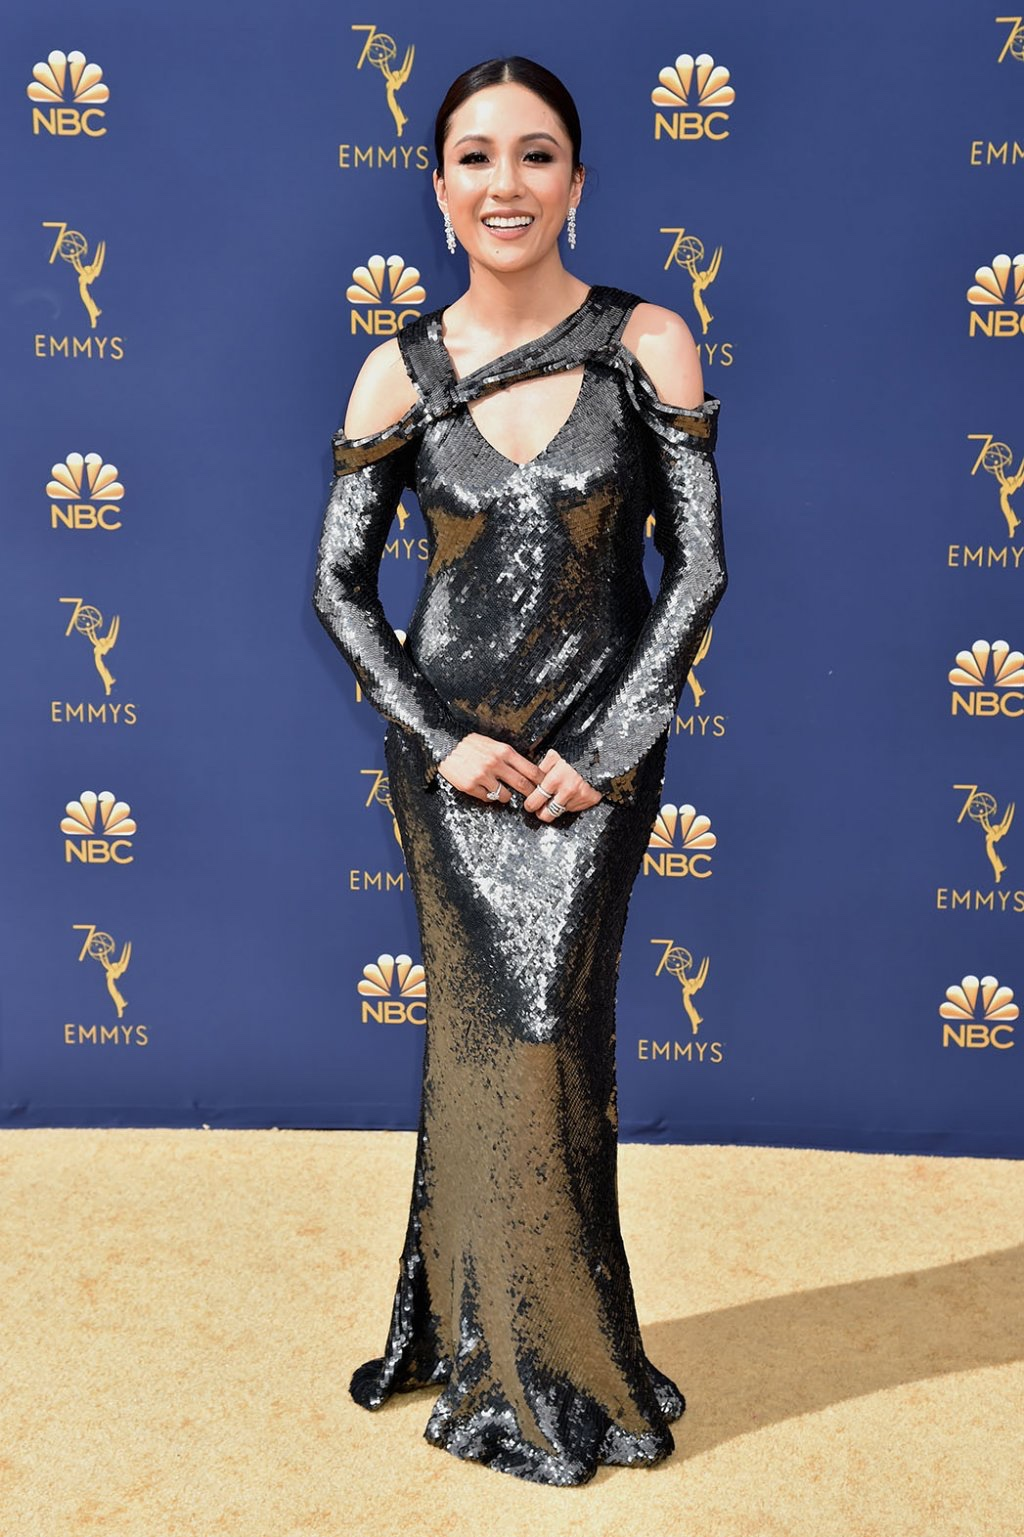 Constance Wu in Jason Wu, 70th Annual Primetime Emmy Awards, Betty White, Emmys 2018, Fashion, Featured, Glenn Weiss, Hannah Gadsby, highlights, Jav Svendsen, Online Exclusive, Style, The Marvellous Mrs. Maisel, top moments, We solved it, Diversity